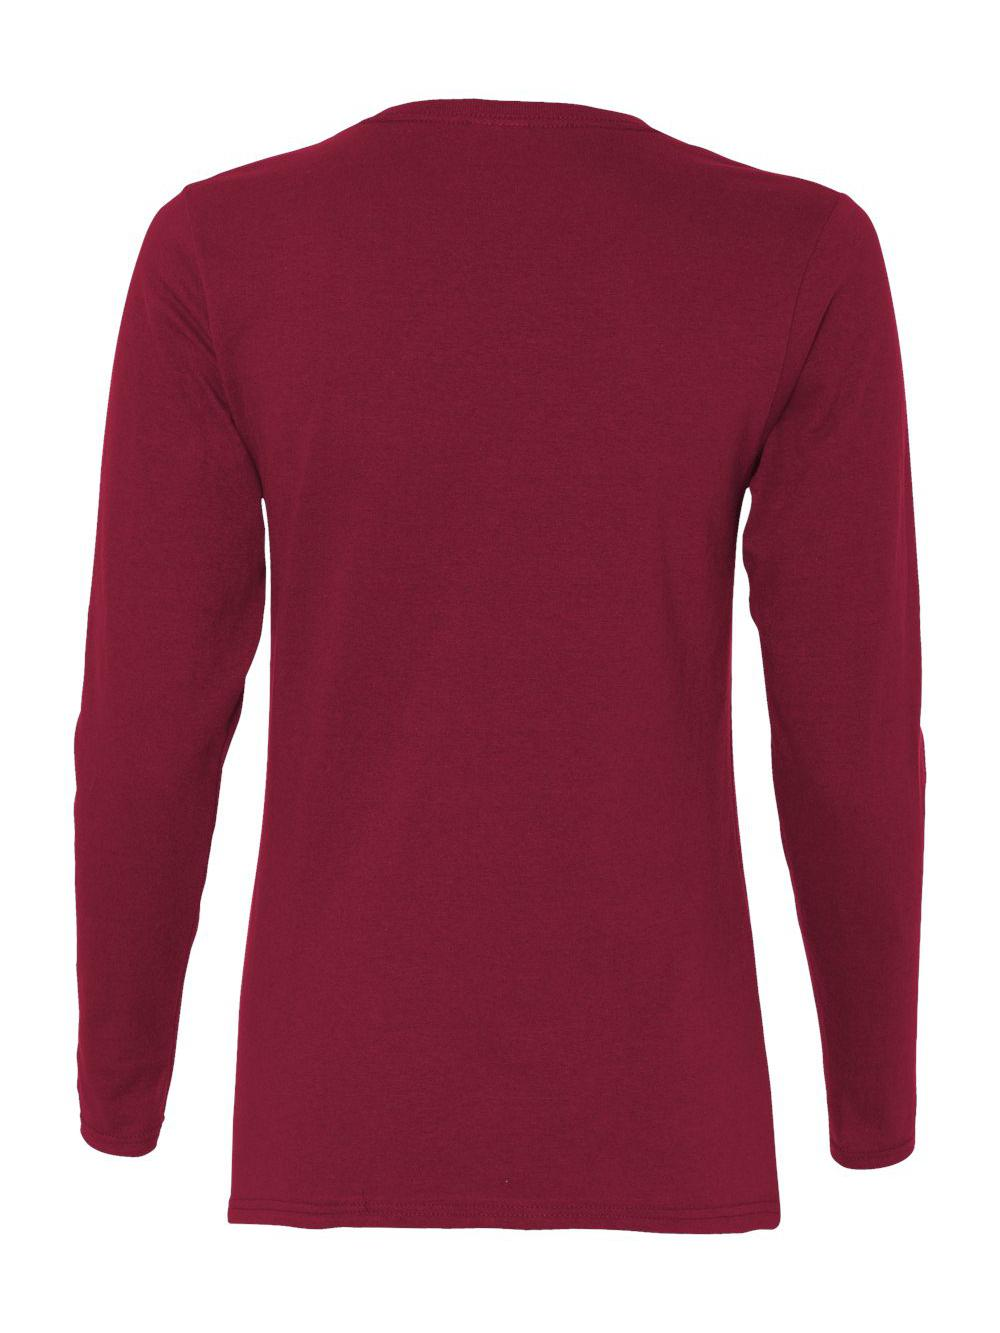 Gildan-Heavy-Cotton-Women-039-s-Long-Sleeve-T-Shirt-5400L thumbnail 7